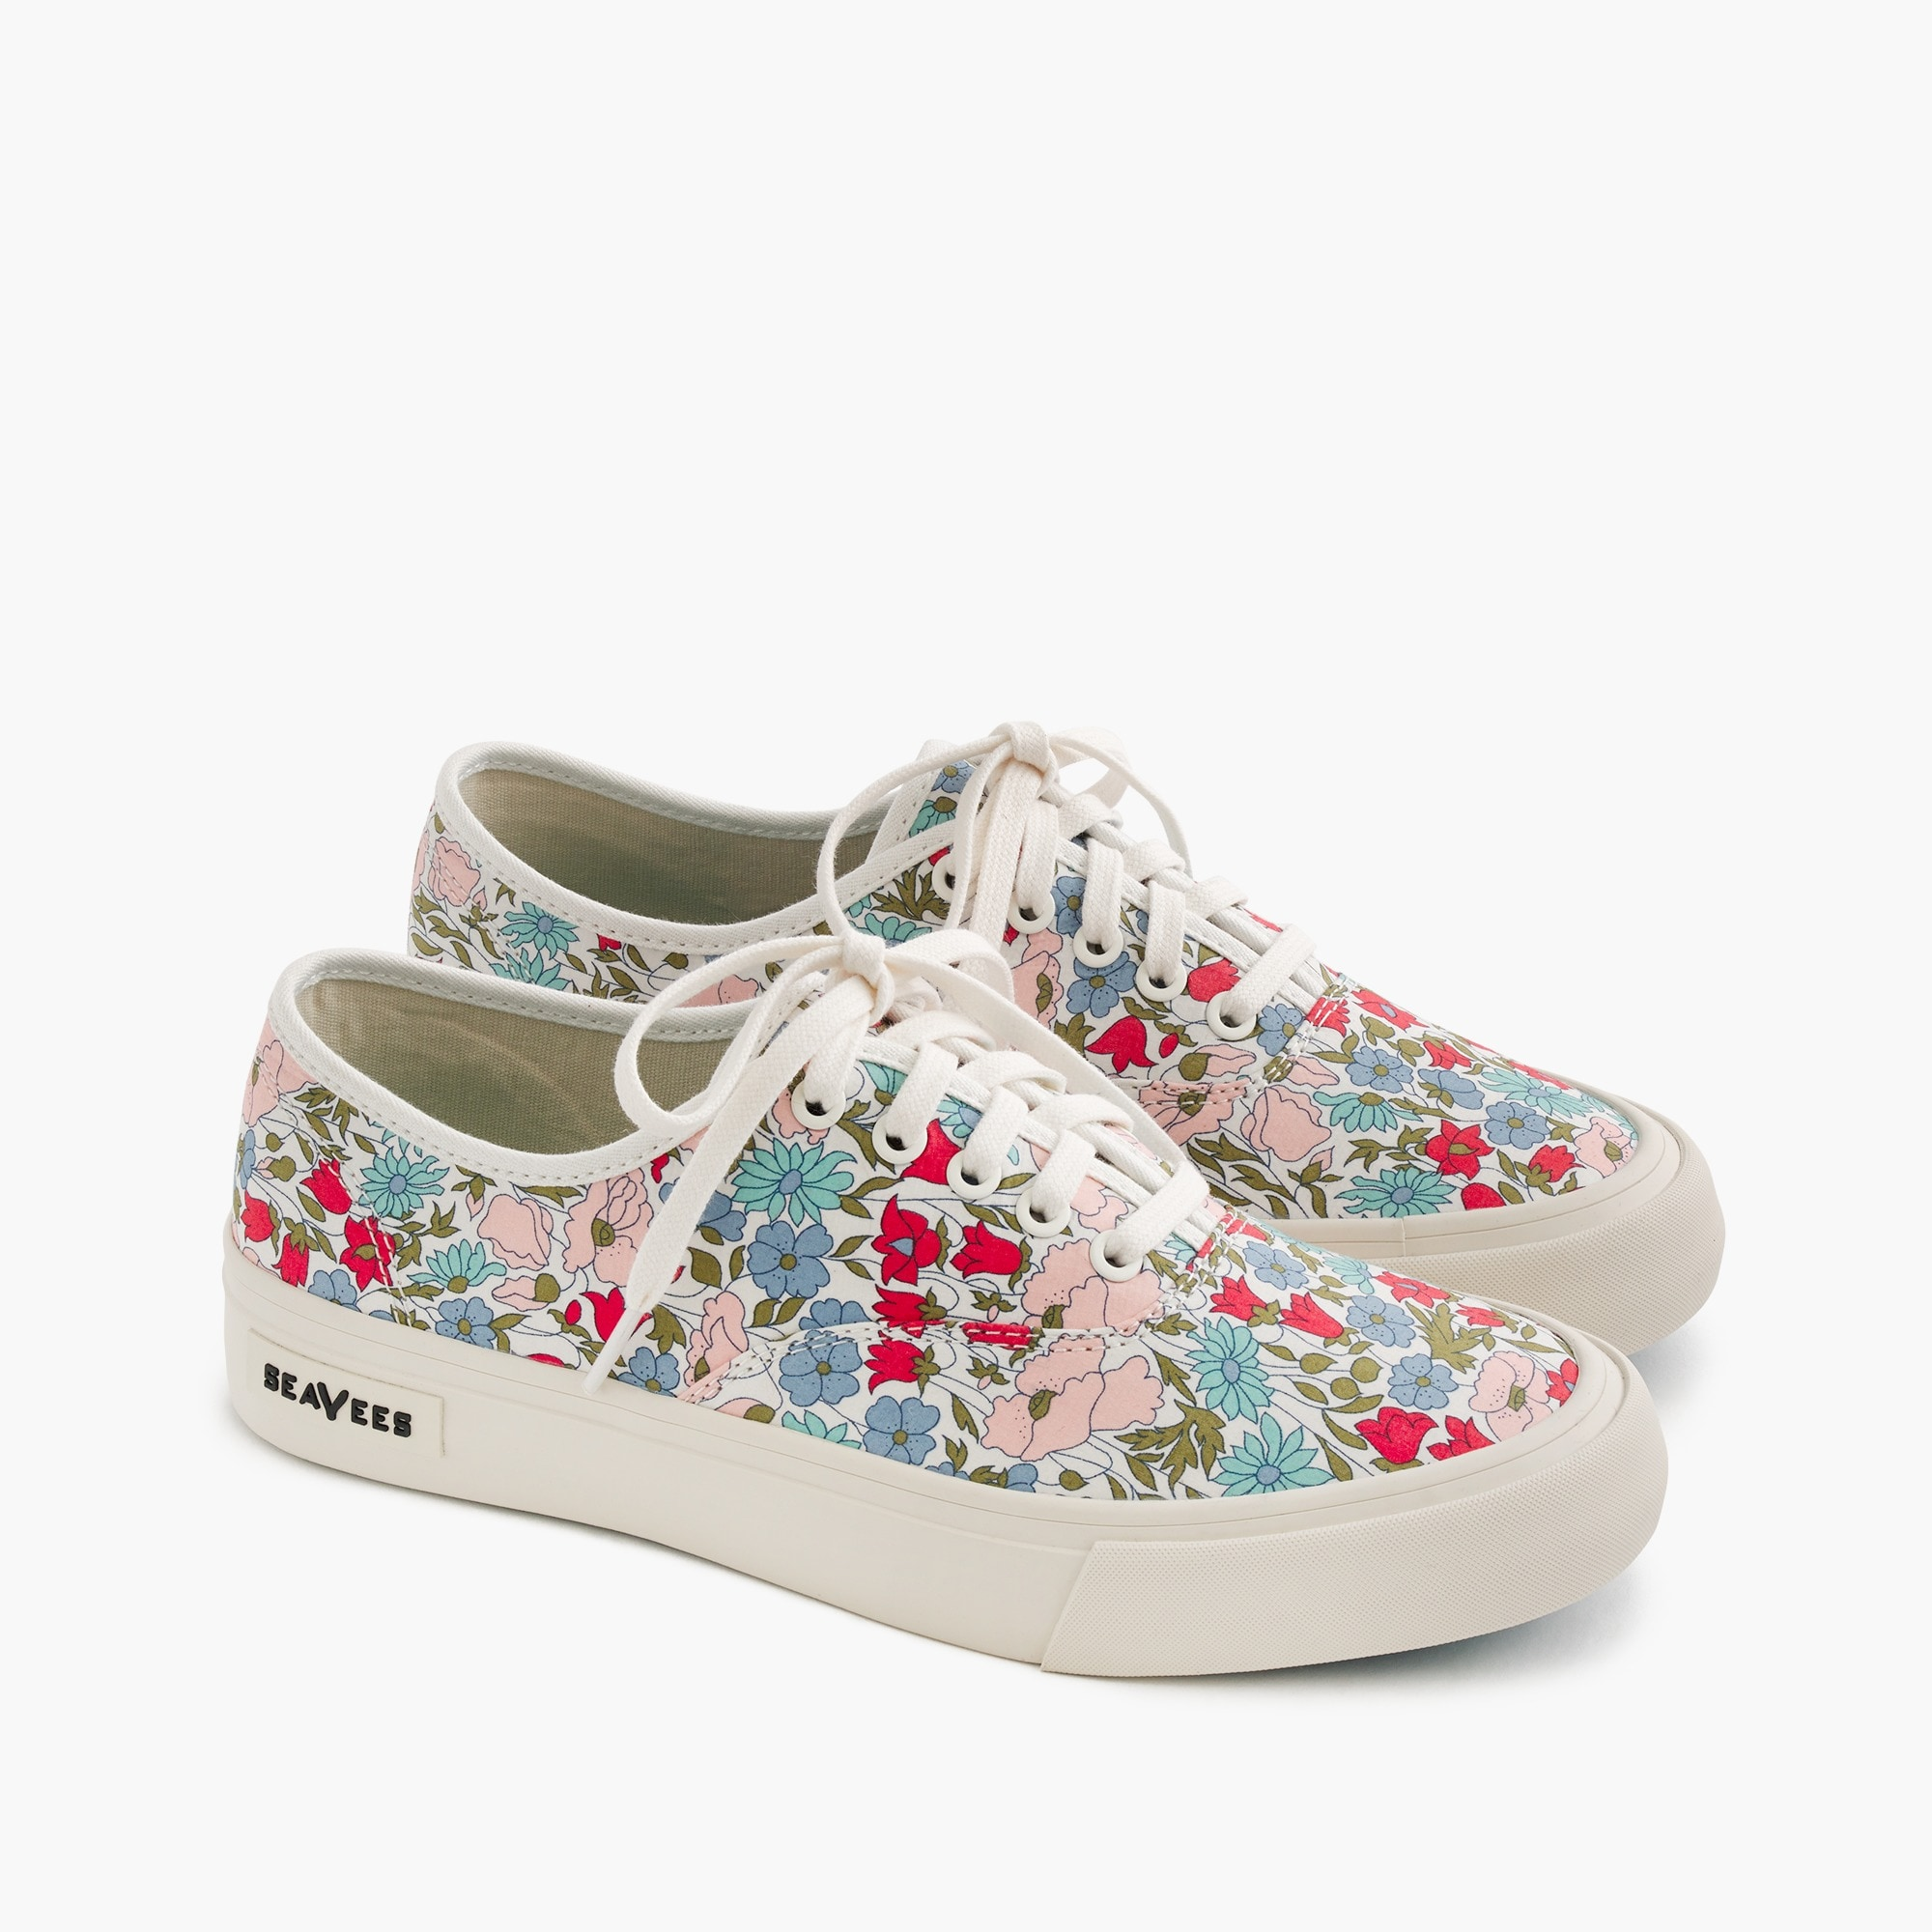 Seavees® for J.Crew Legend sneakers in Liberty poppy & daisy floral